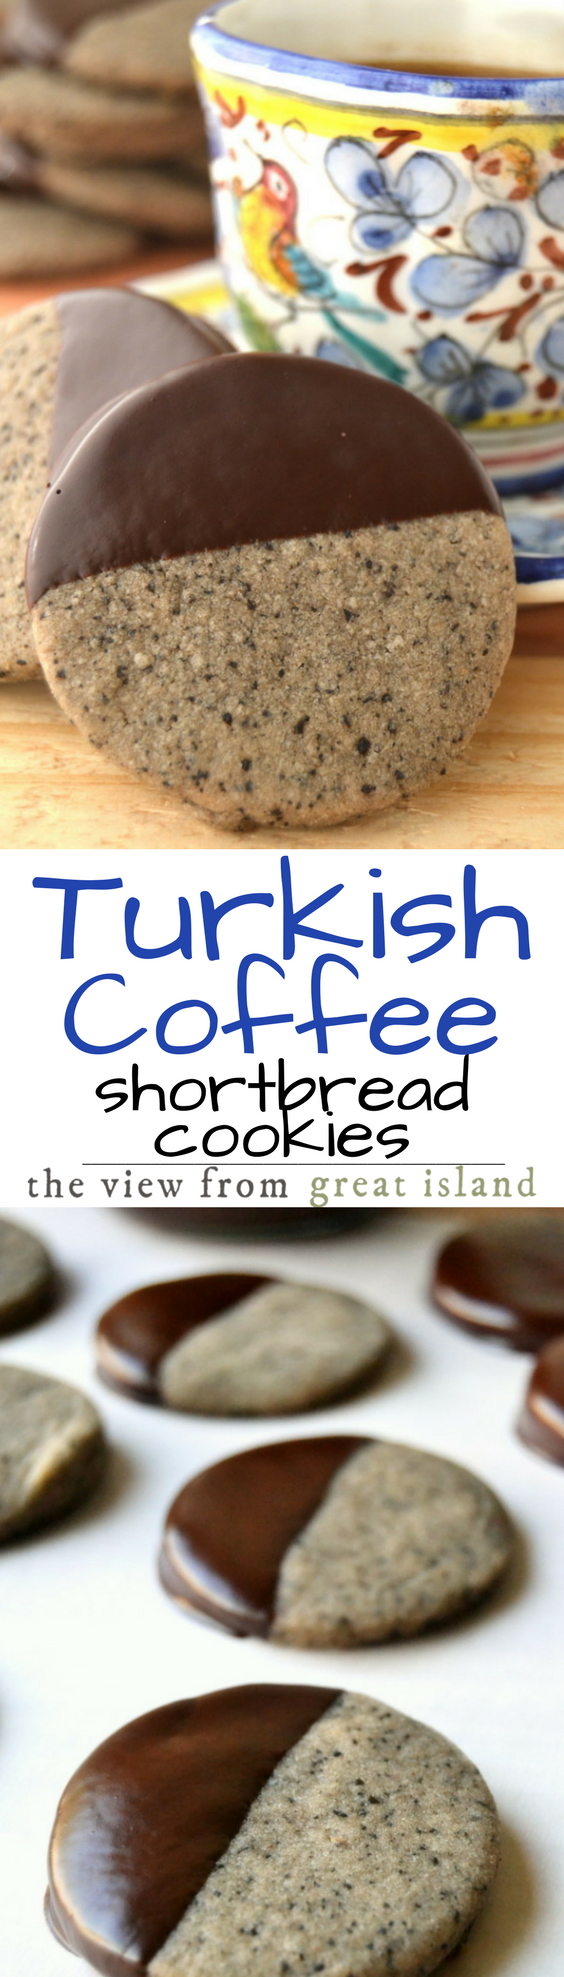 Turkish Coffee Shortbread Cookies are buttery and delicious with a striking flavor combination of strong coffee and warm cardamom ~ these are cookies to linger over! #turkishcoffee #shortbread #shortbreadcookierecipe #coffeecookies #dessert #cookies #baking #coffee #holidaycookies